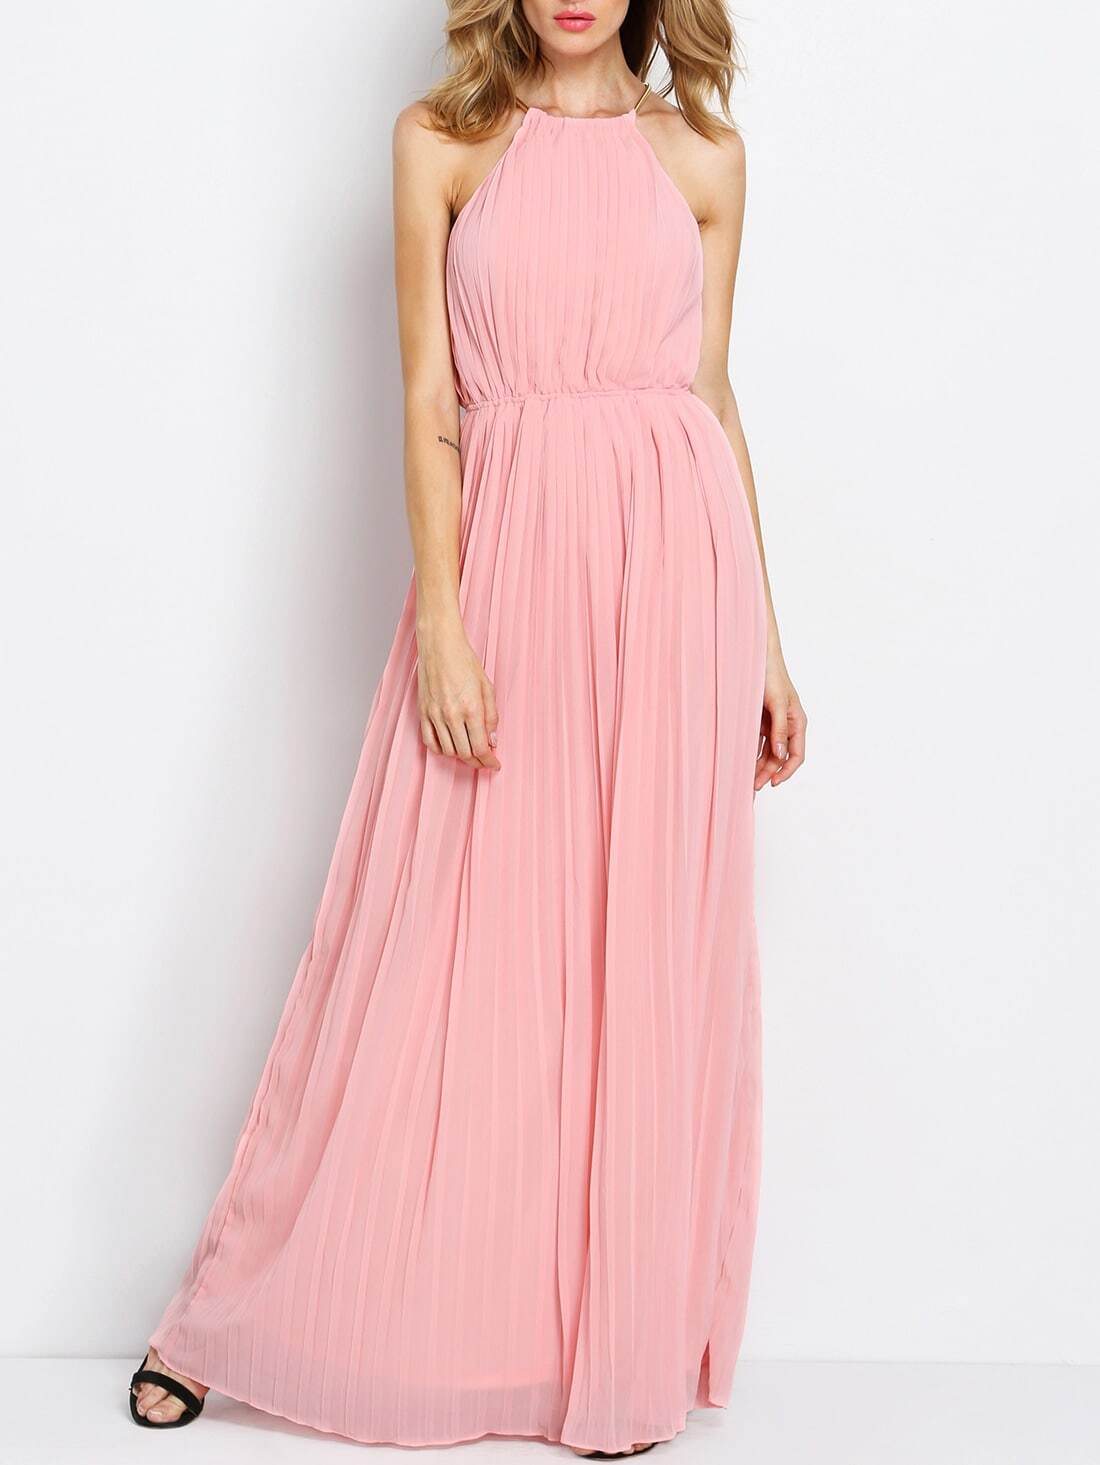 Pink Sleeveless Halter Pleated Maxi Dress -SheIn(Sheinside)